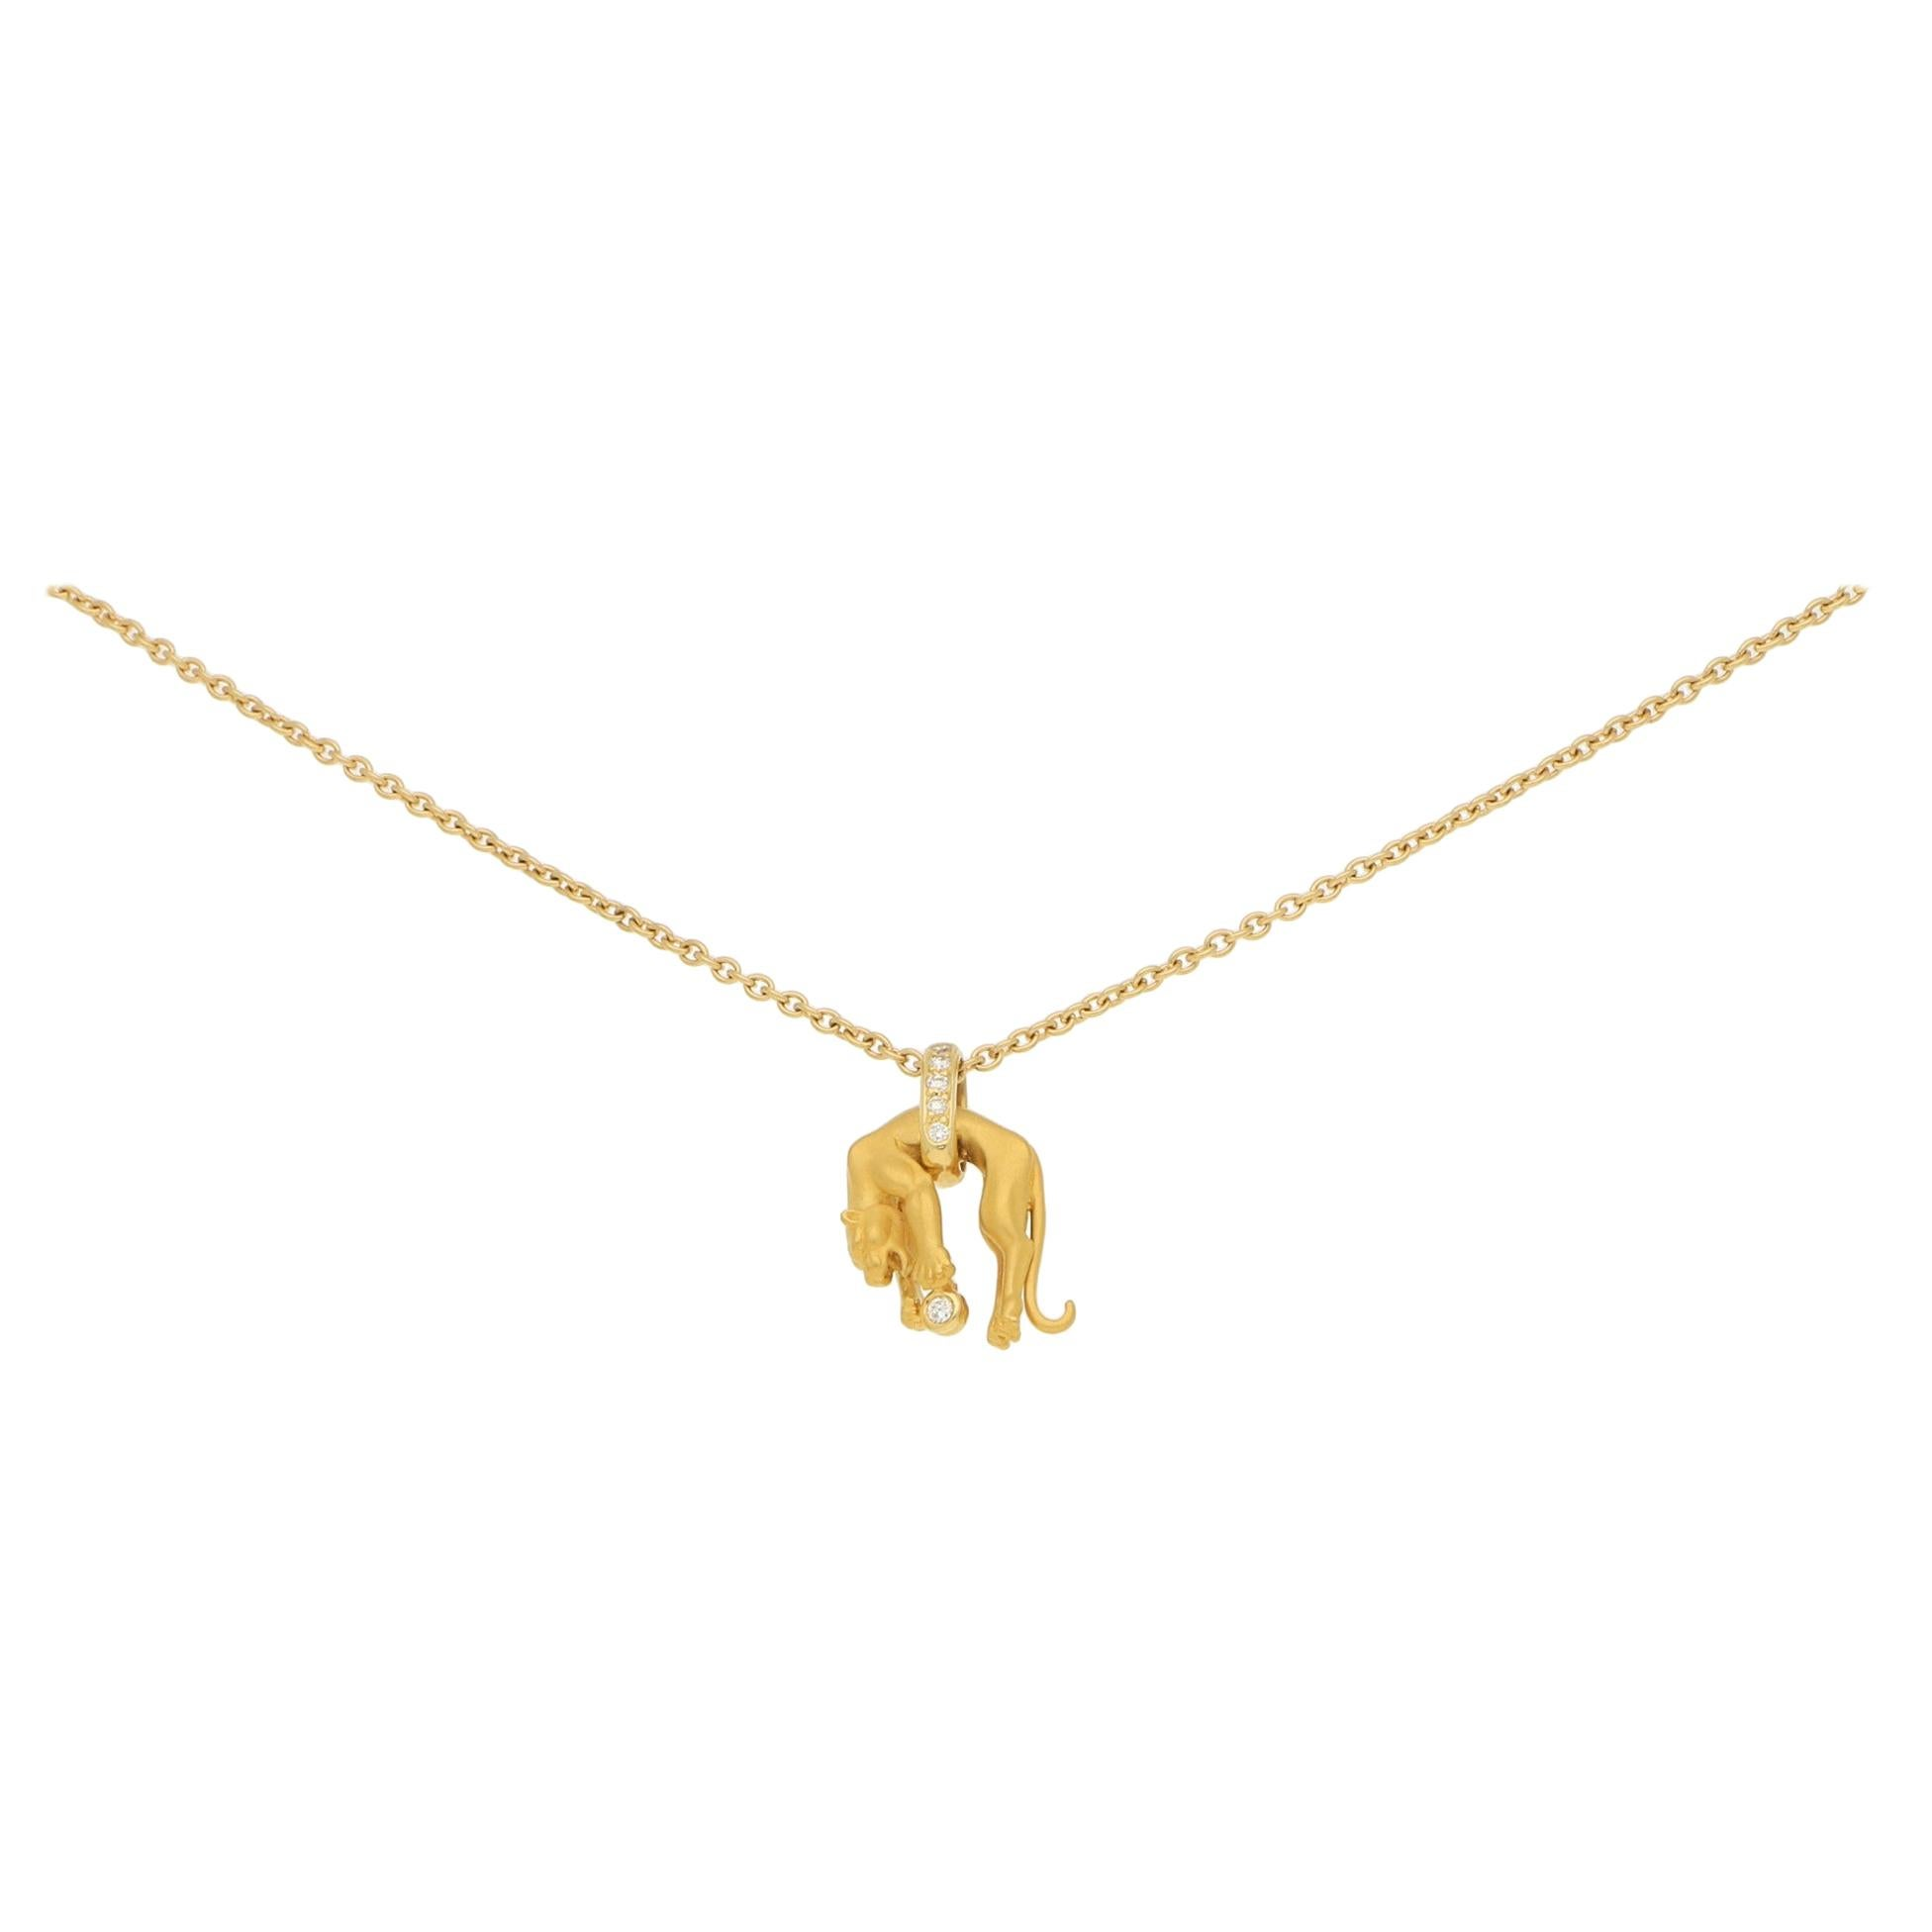 1980s Carrera y Carrera Diamond Panther Necklace in Yellow Gold